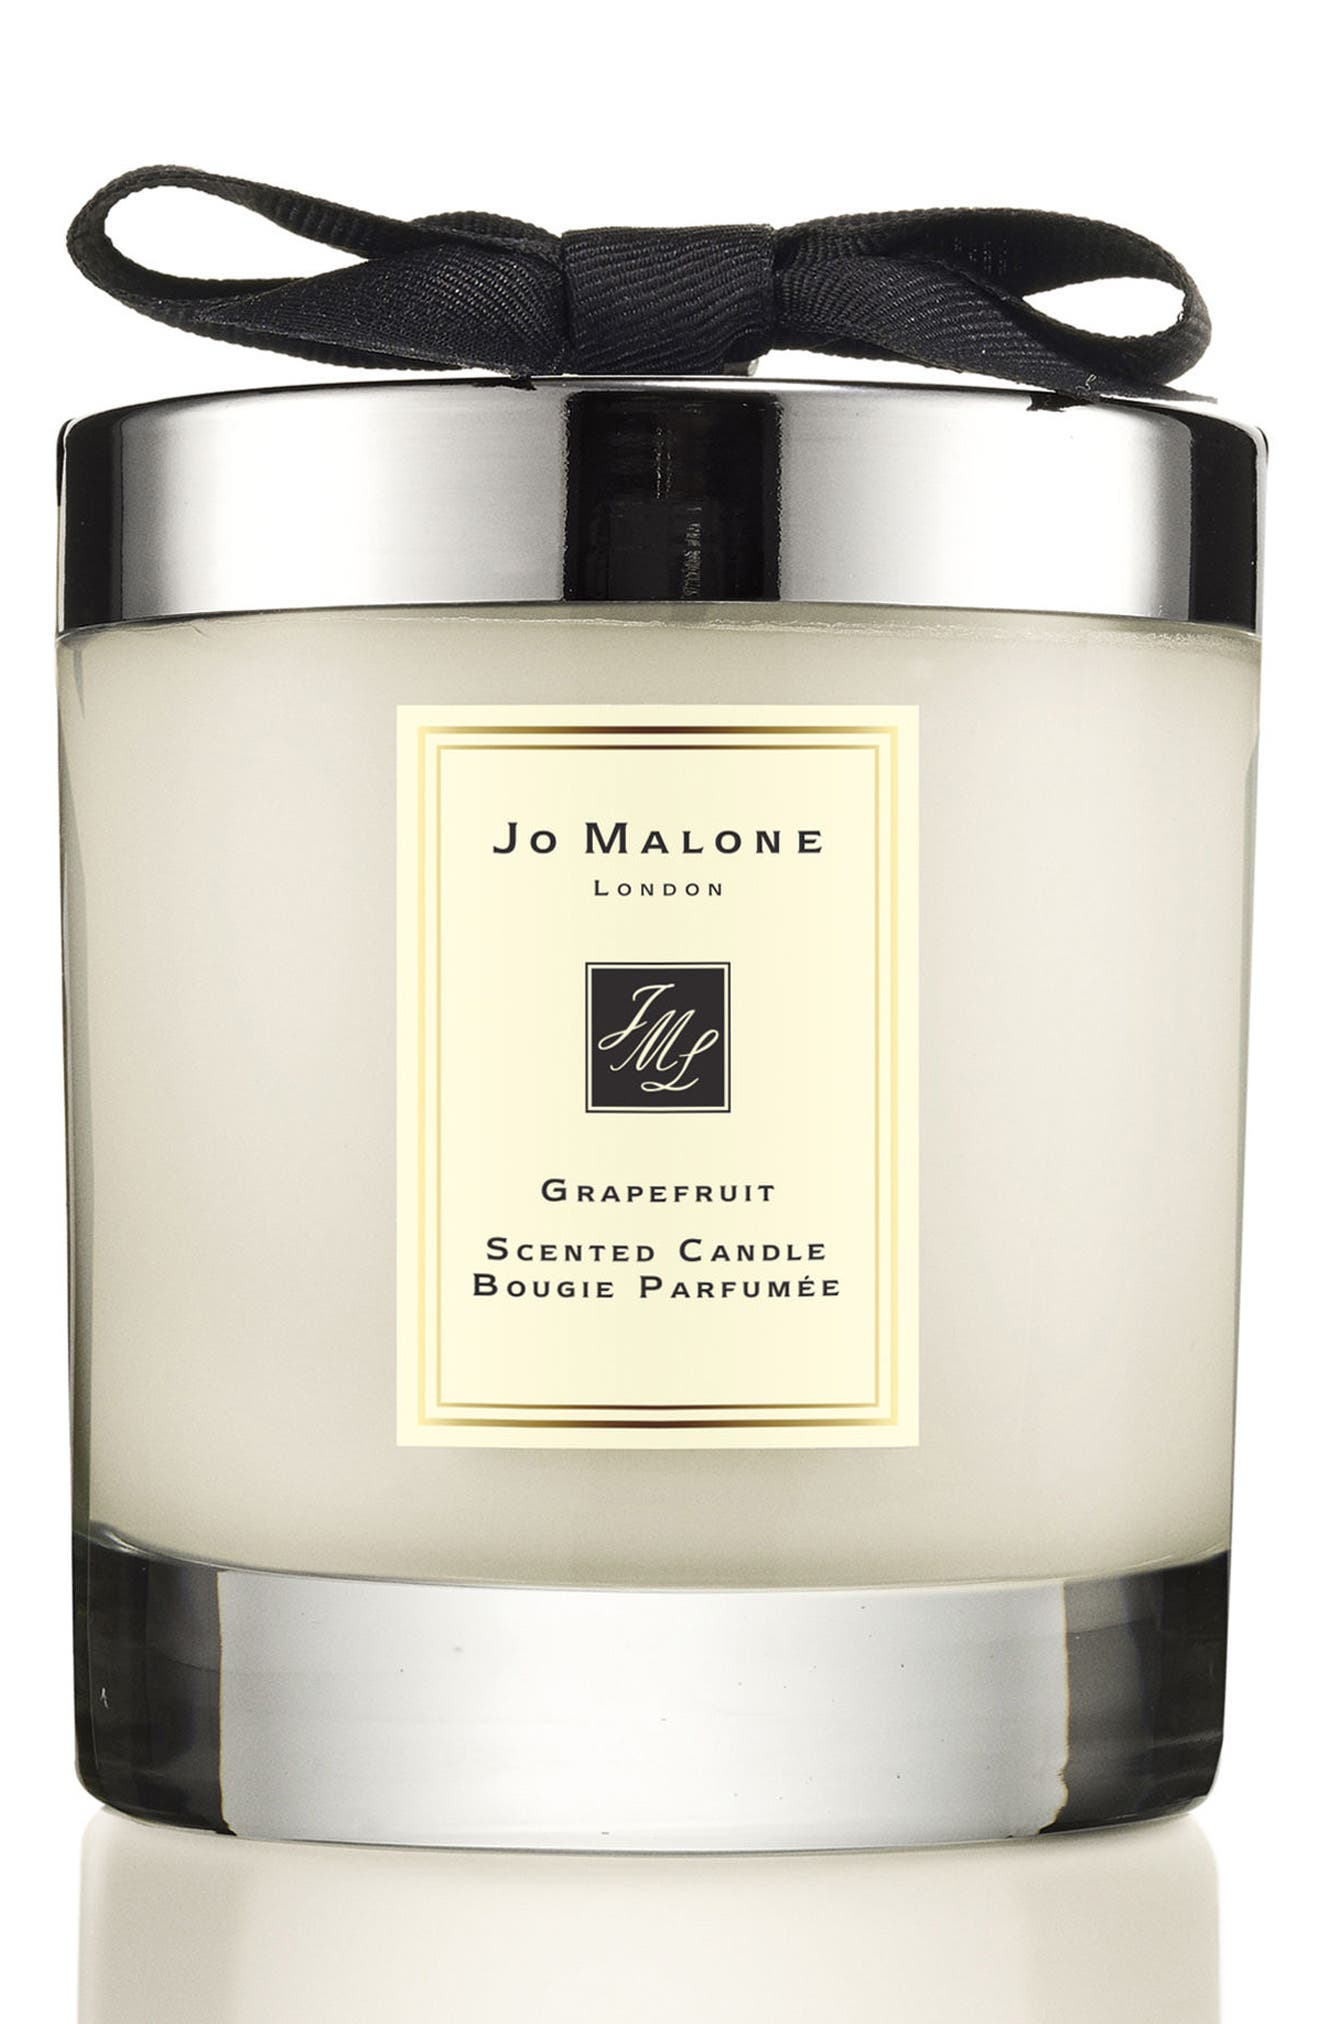 Jo Malone™ 'Grapefruit' Scented Home Candle